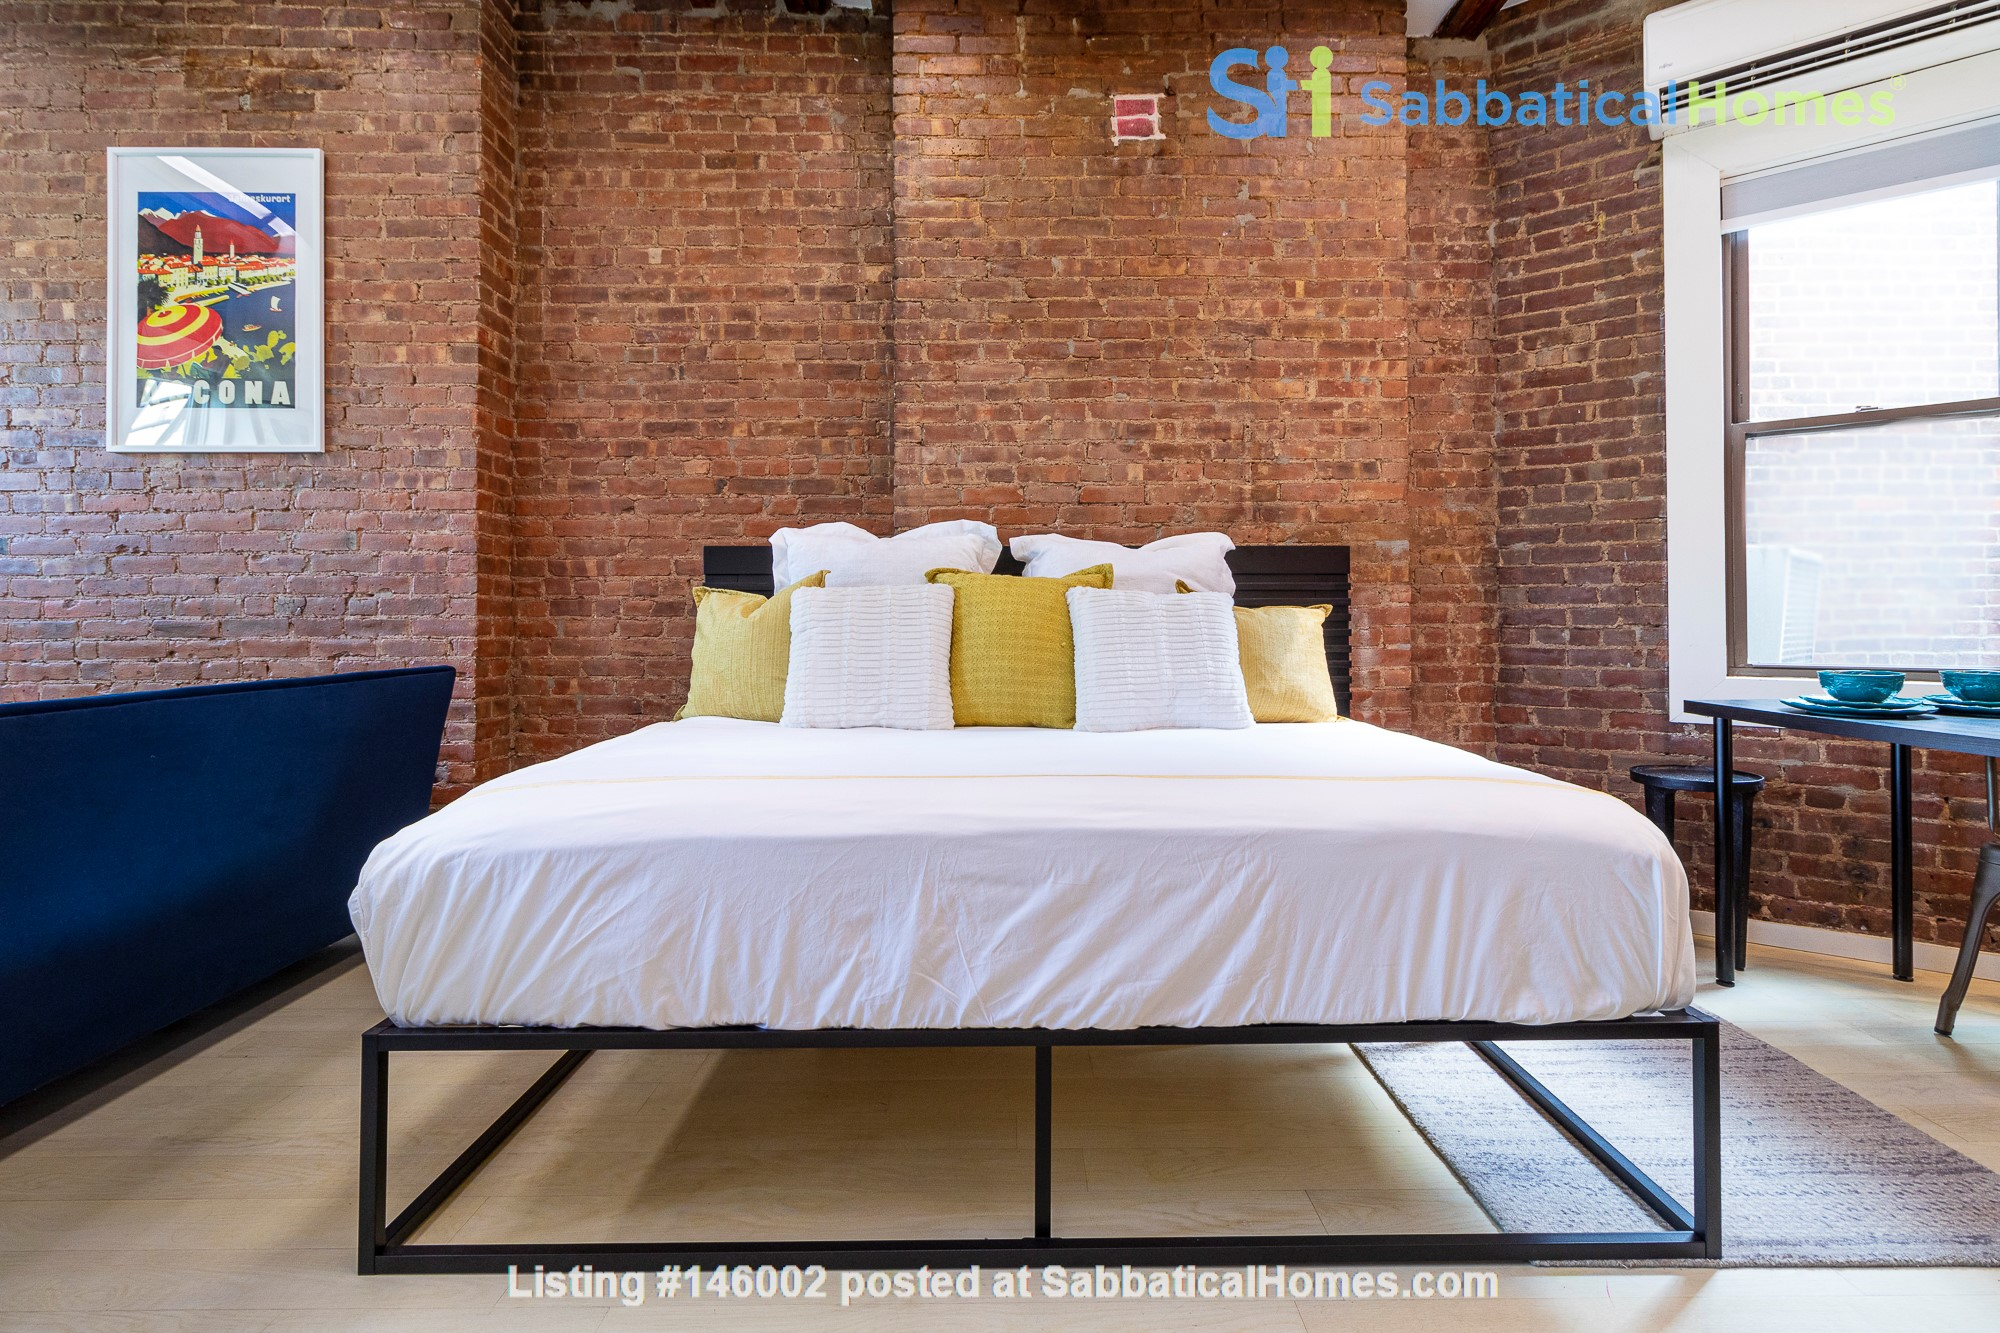 Newly renovated West Village unit in historic building with rooftop Home Rental in New York 4